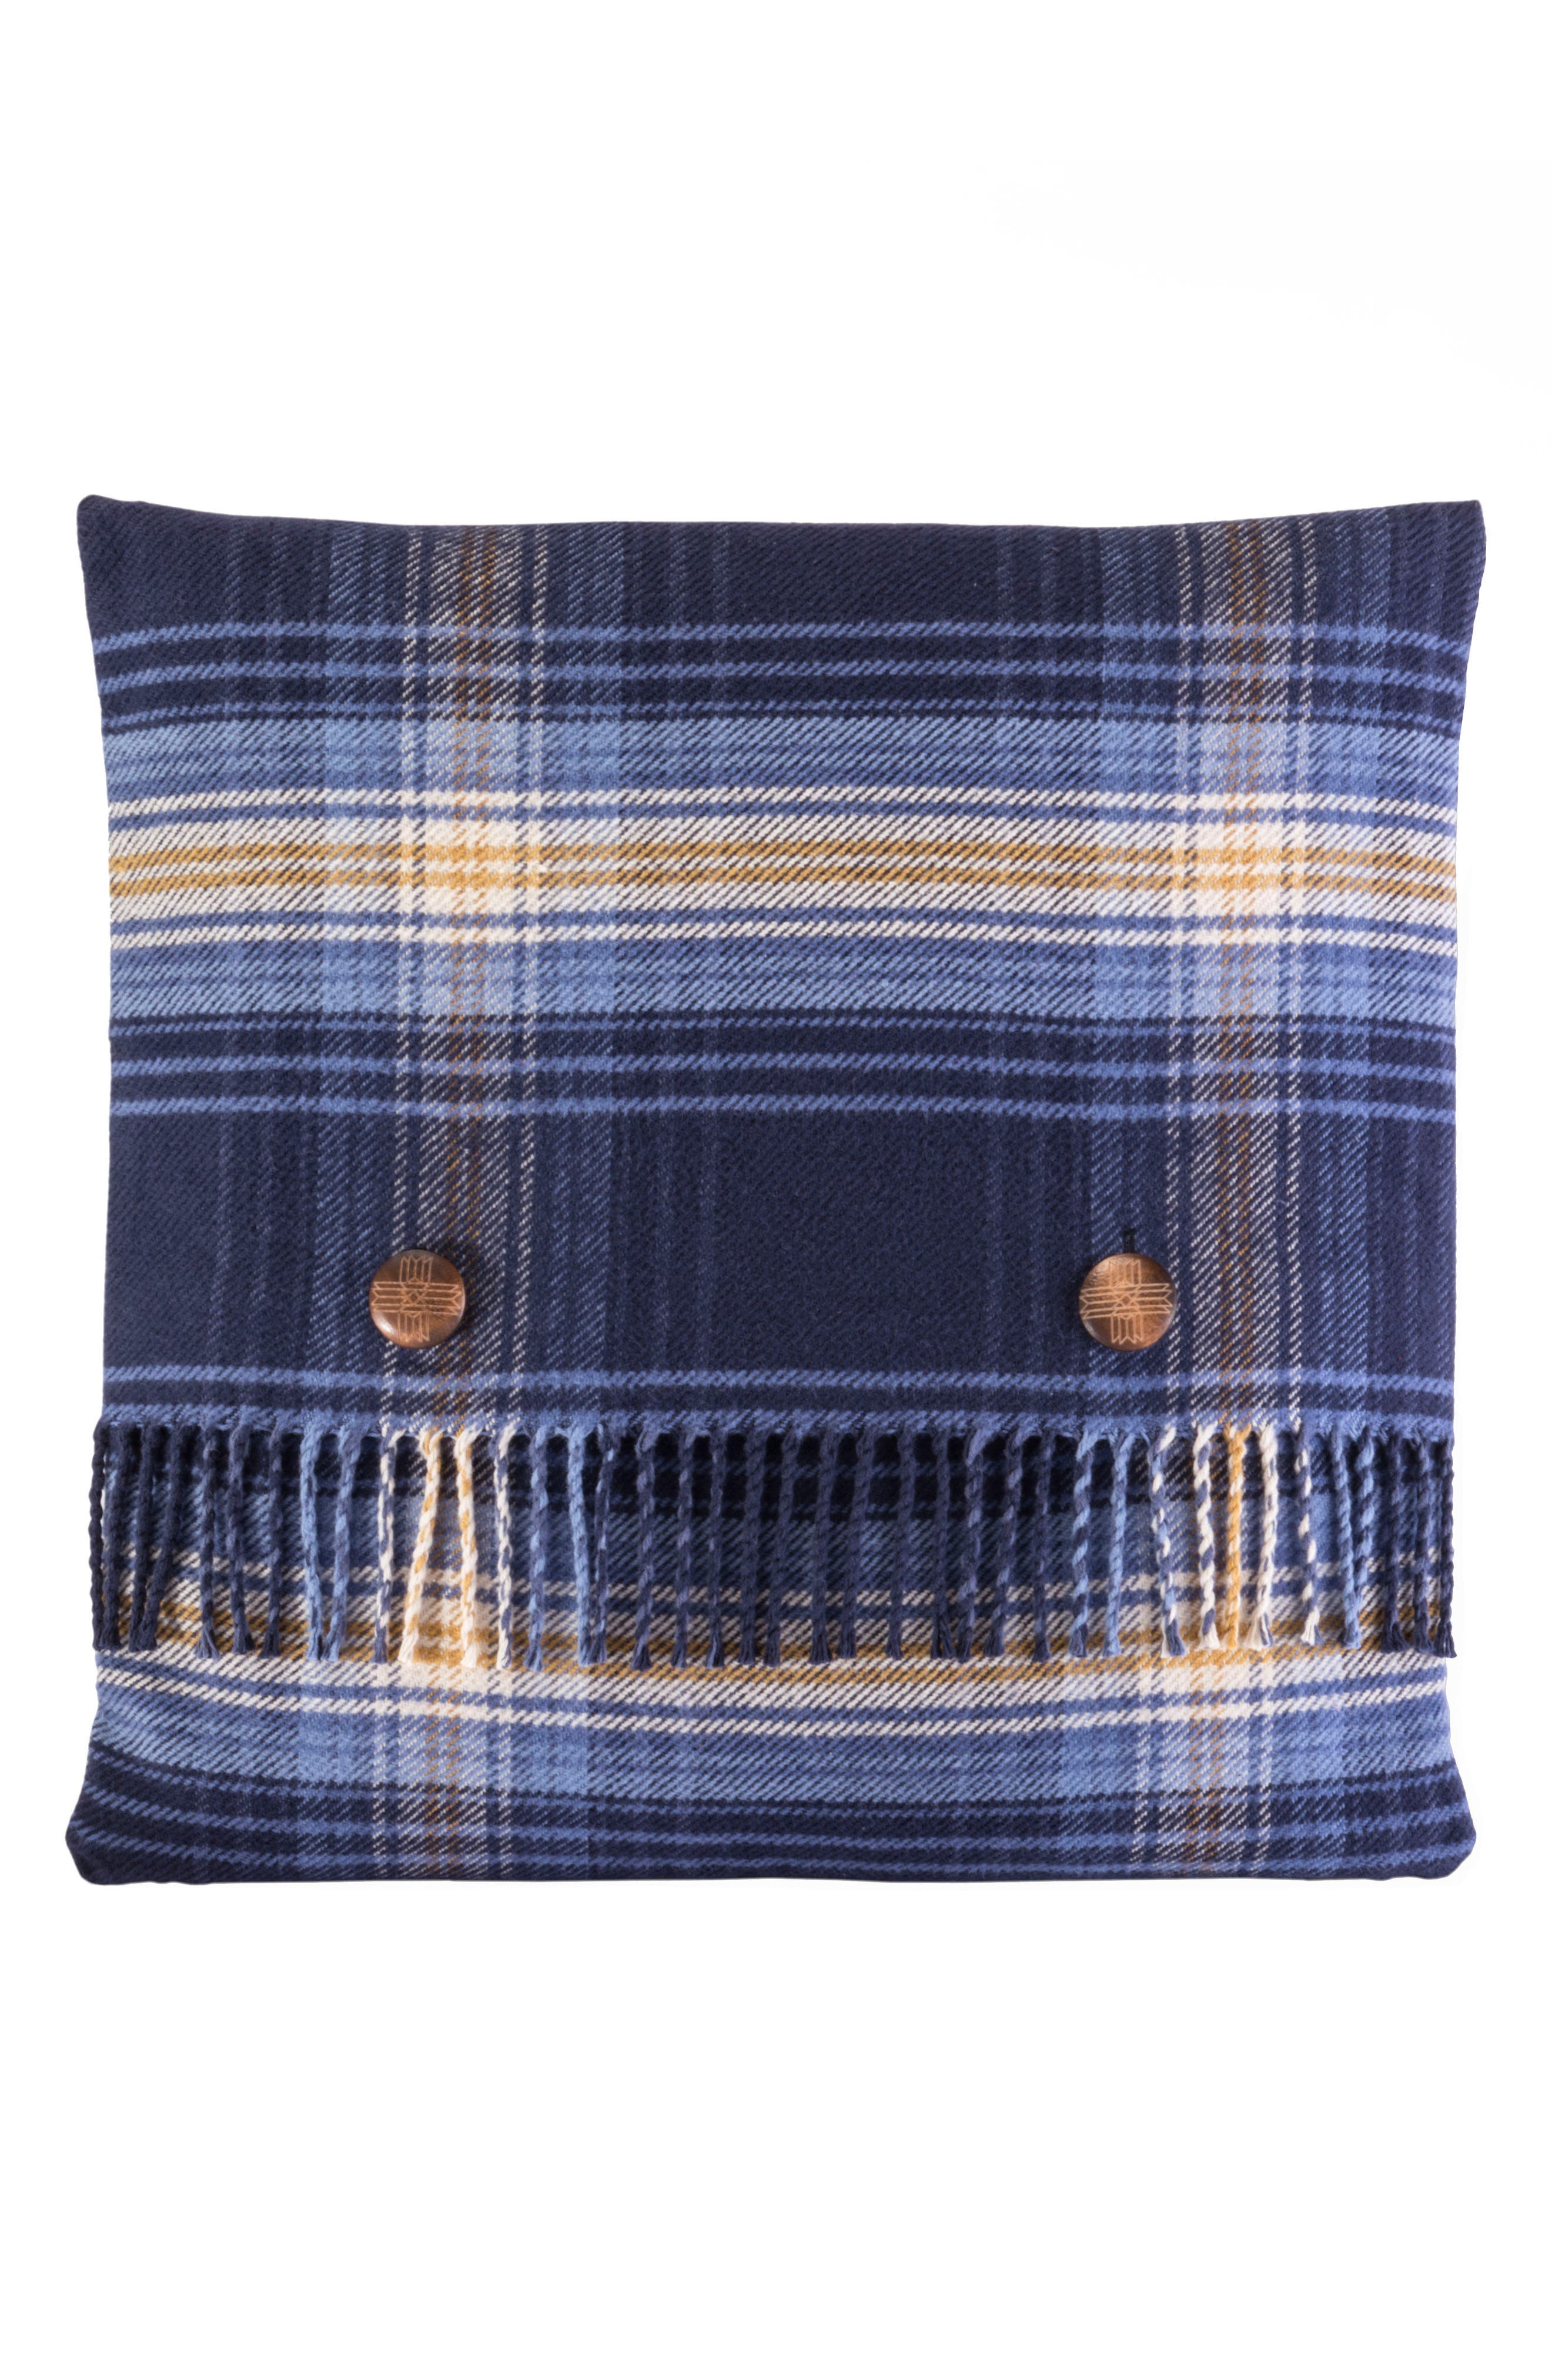 Ombre Plaid Pillow,                         Main,                         color, Blue And Gold